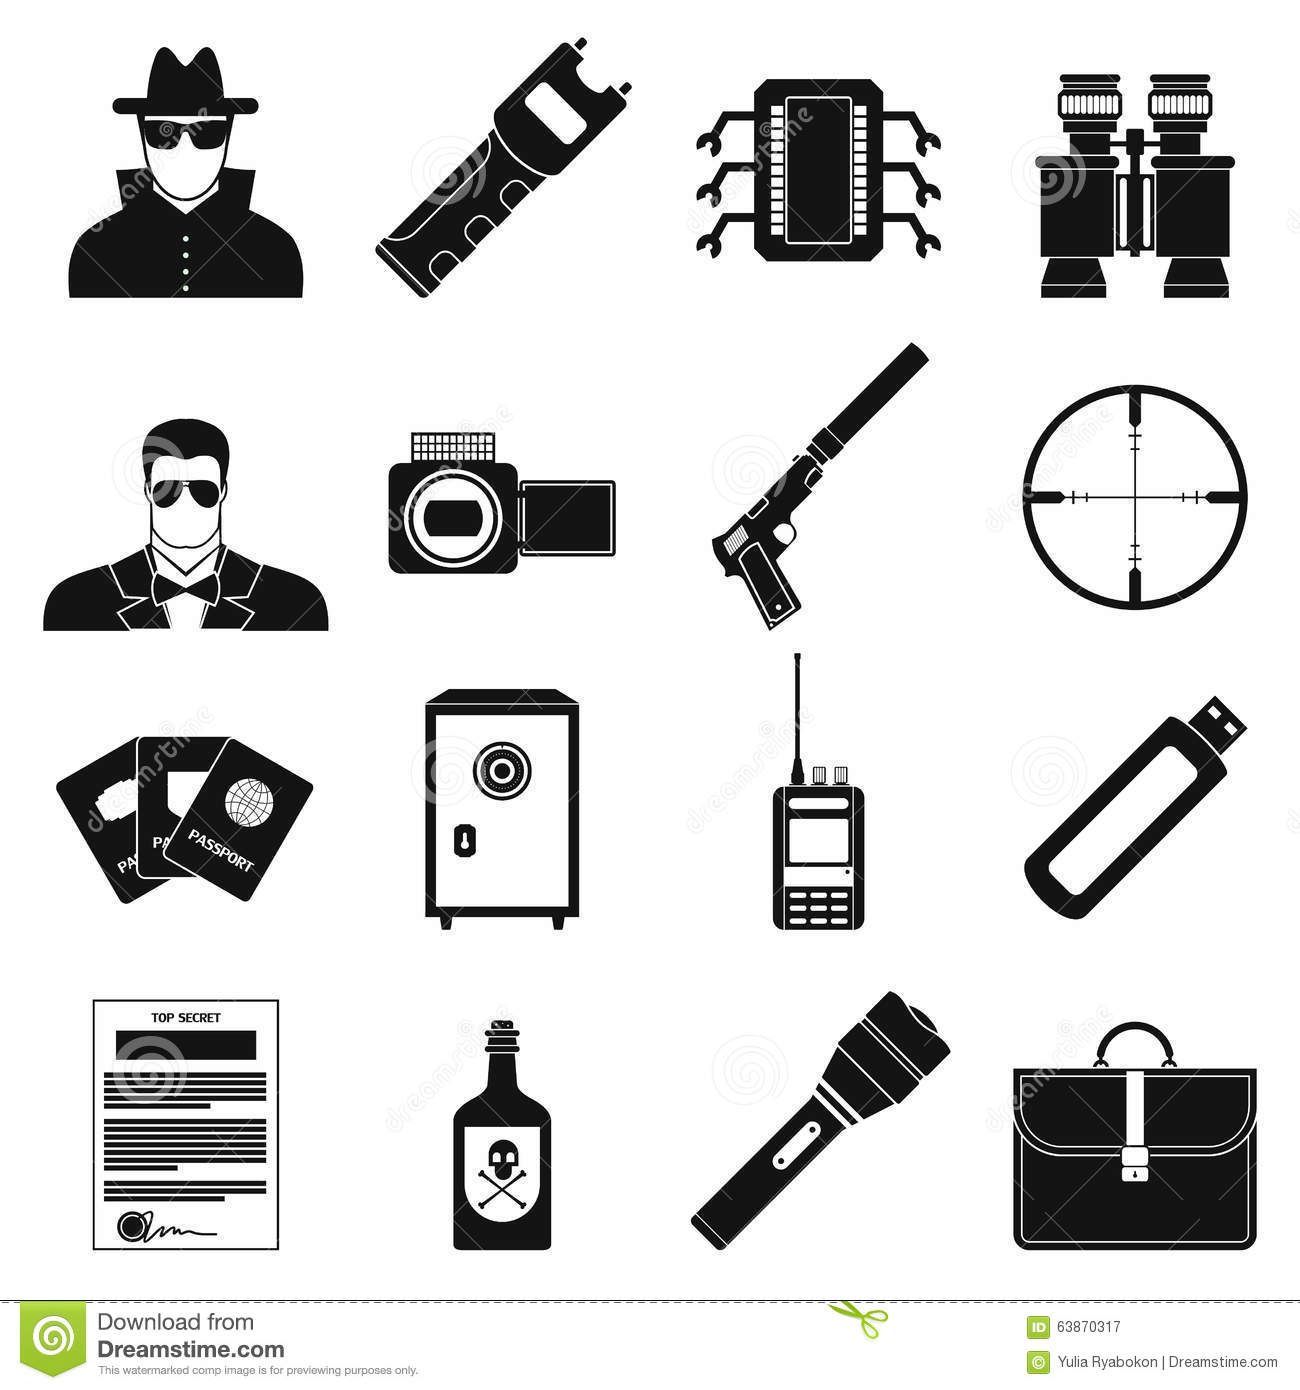 Spy simple icons stock vector. Image of agent, passport